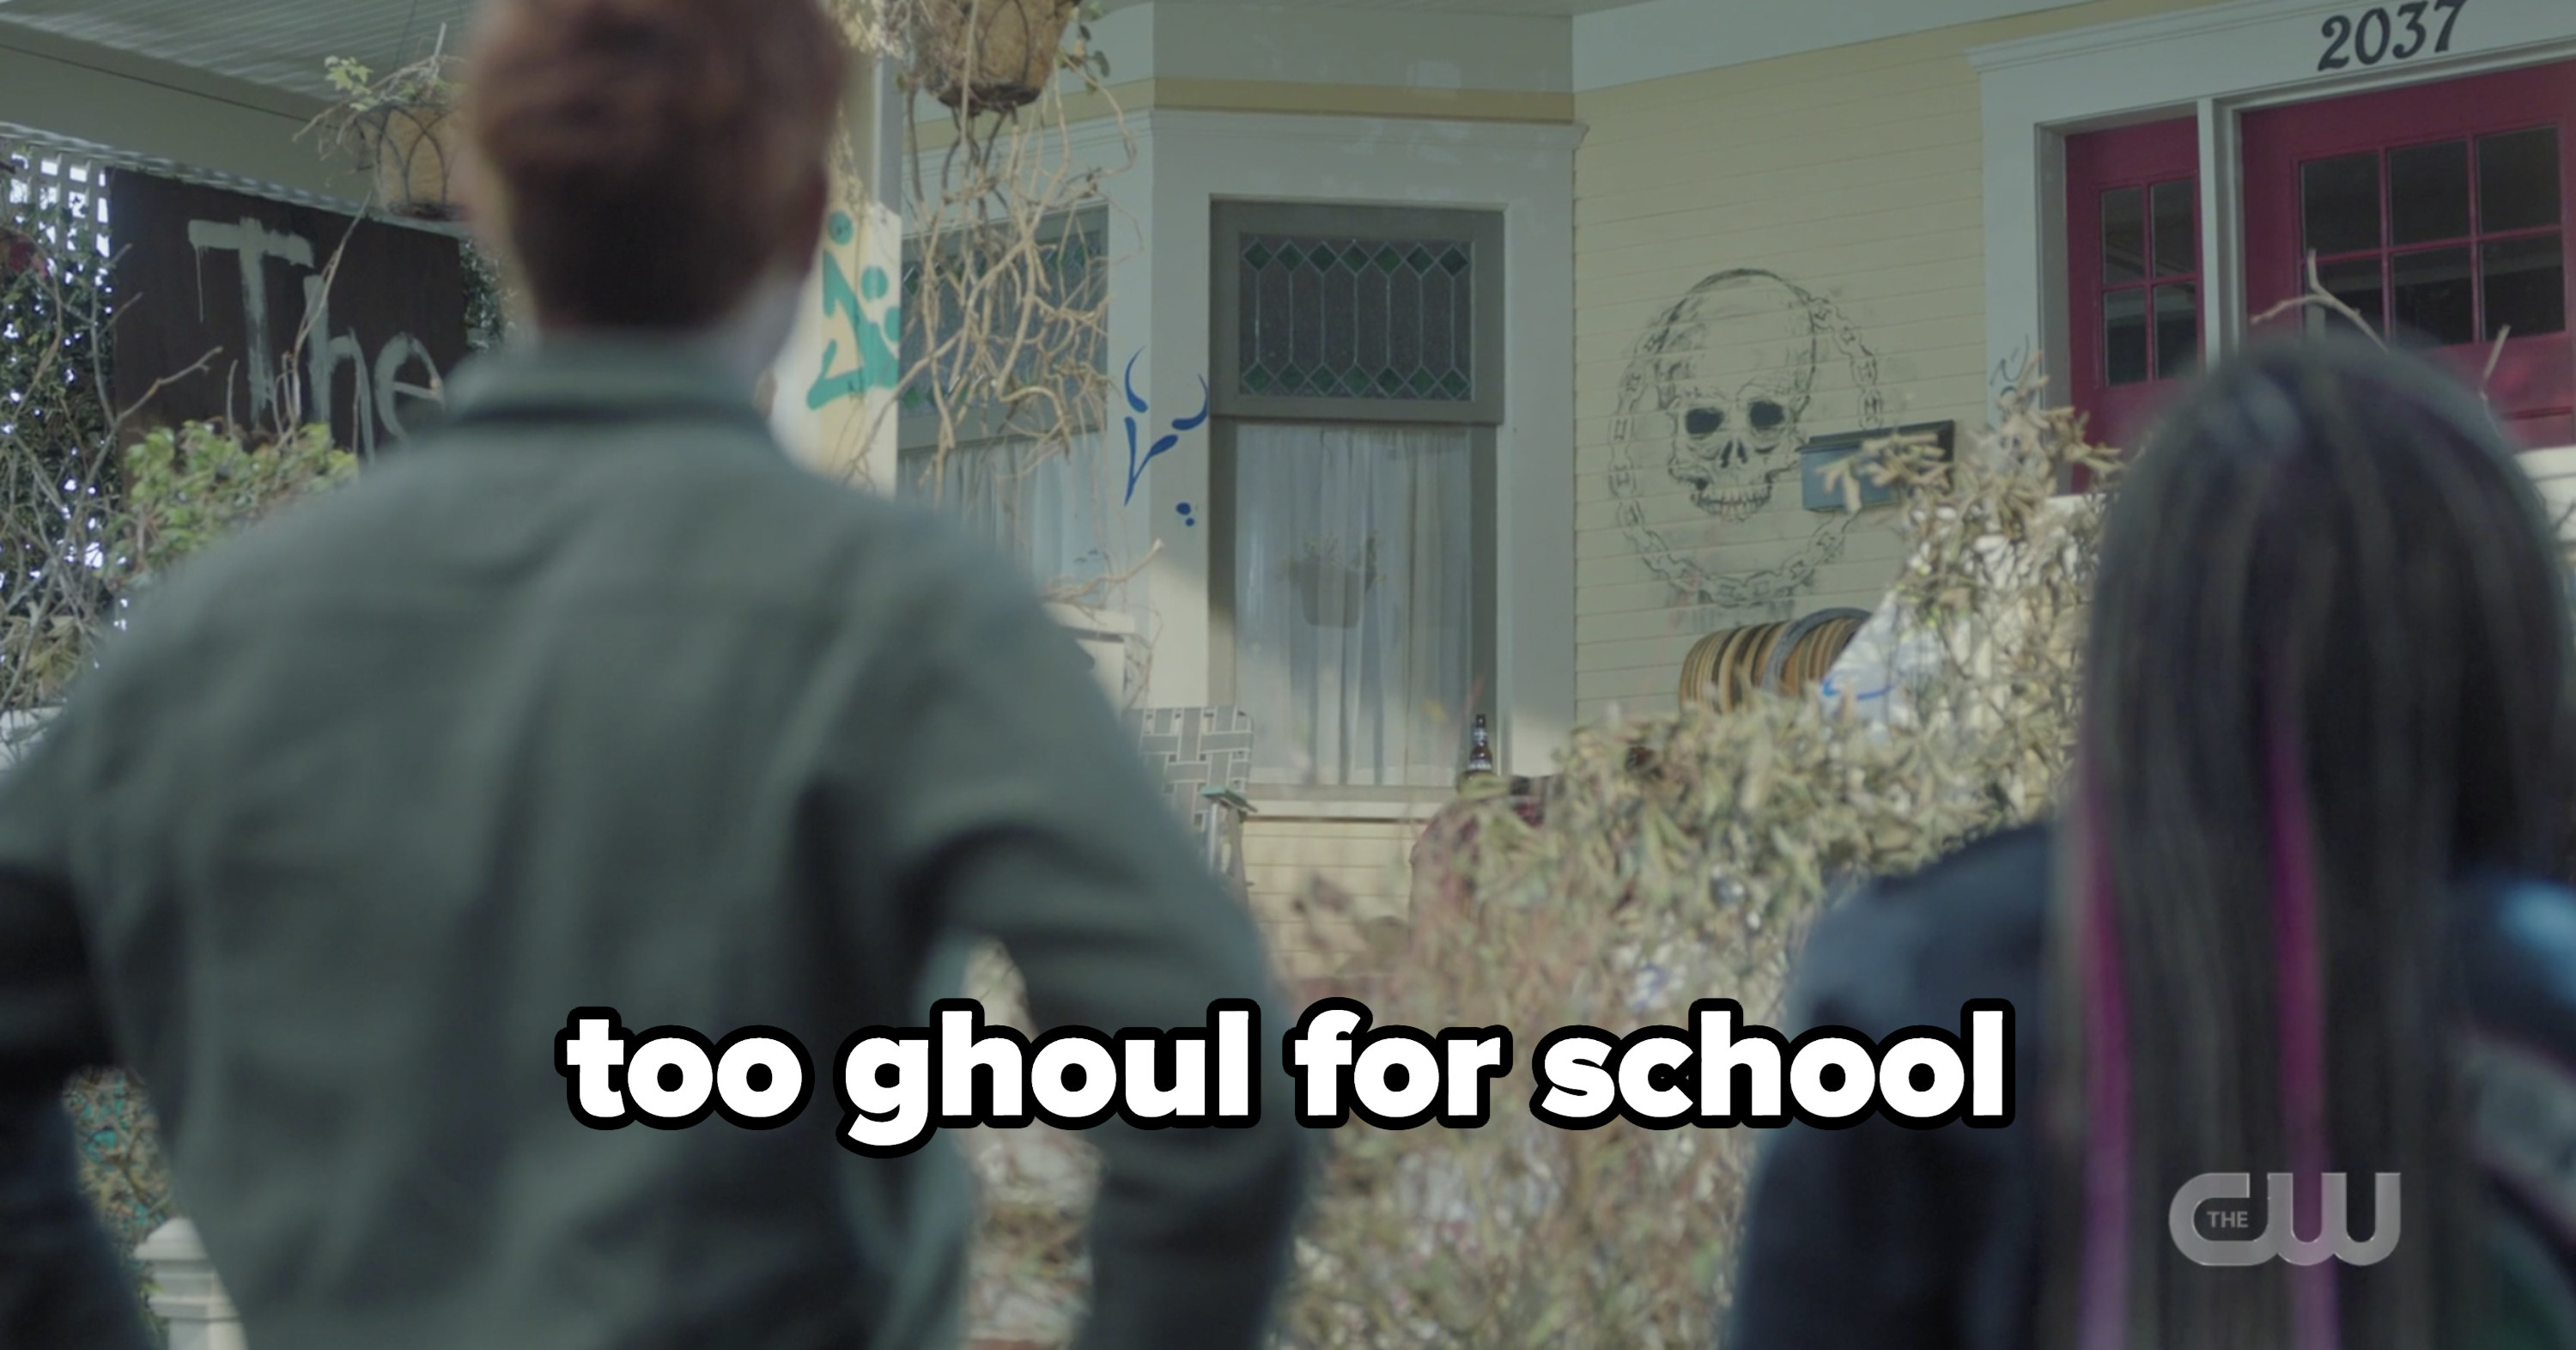 Archie's destroyed house with the caption too ghoul school